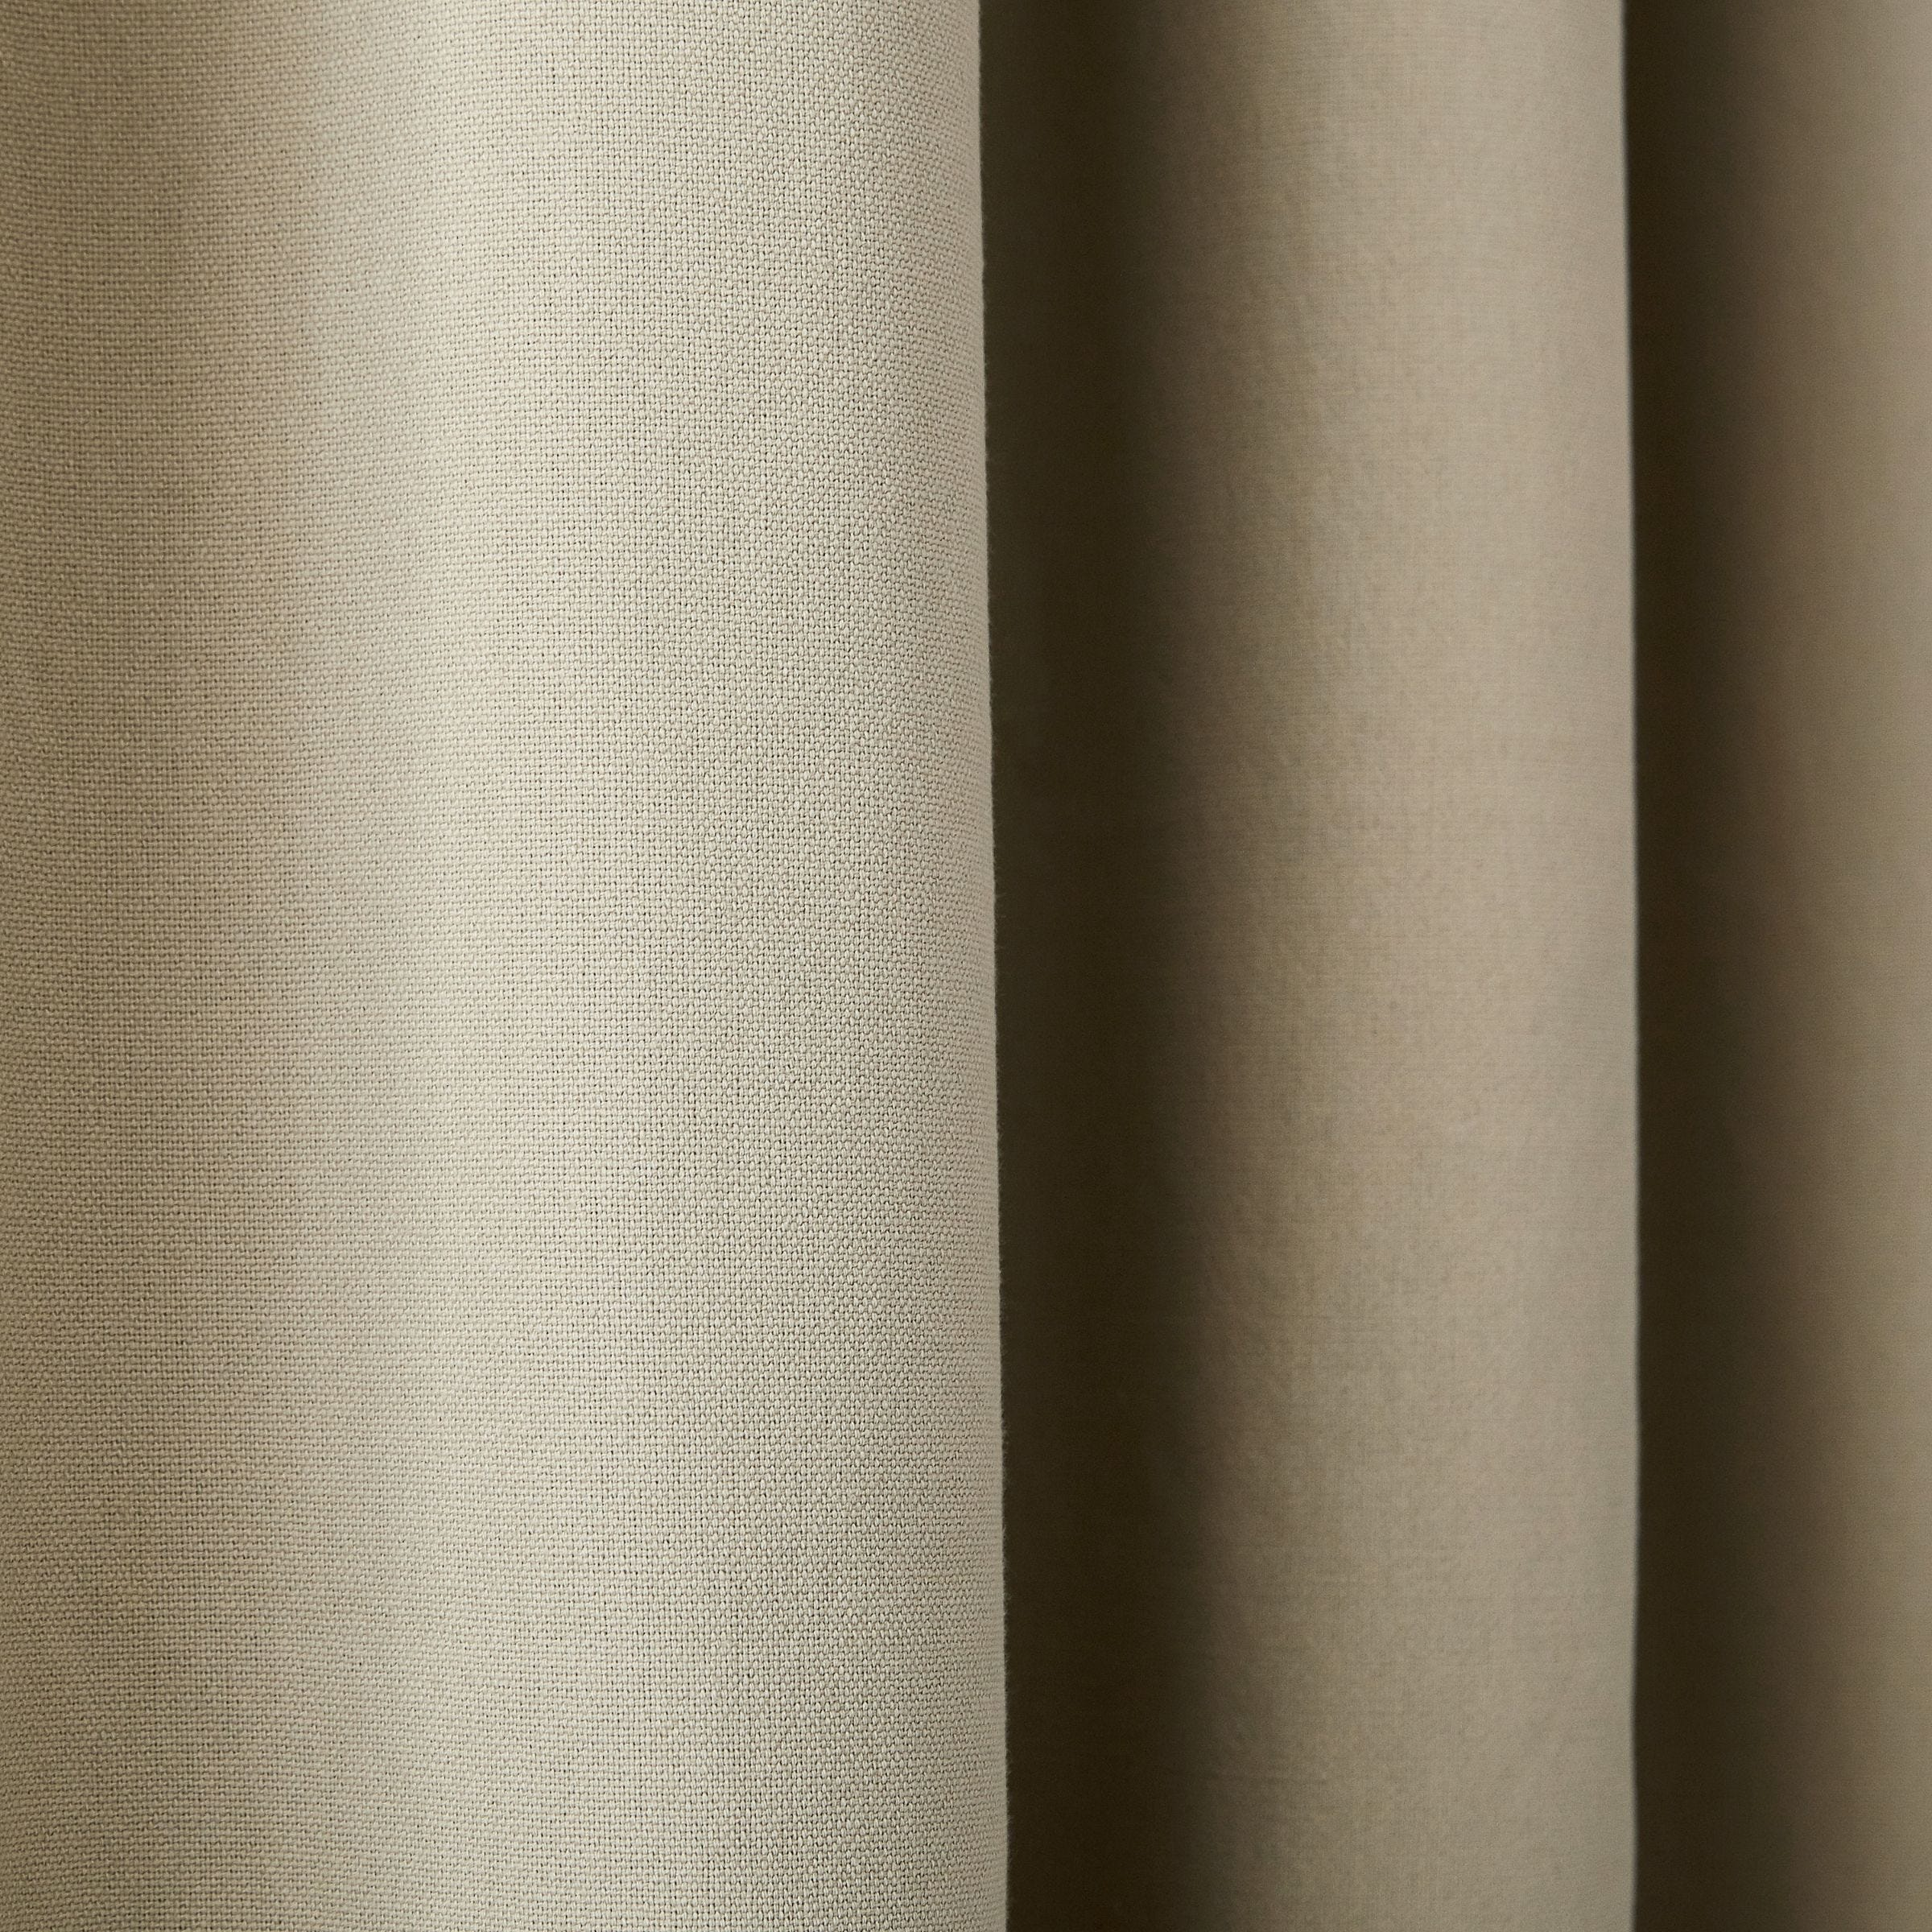 Clarissa Hulse Chroma Lined Curtains Natural Bedeck Home